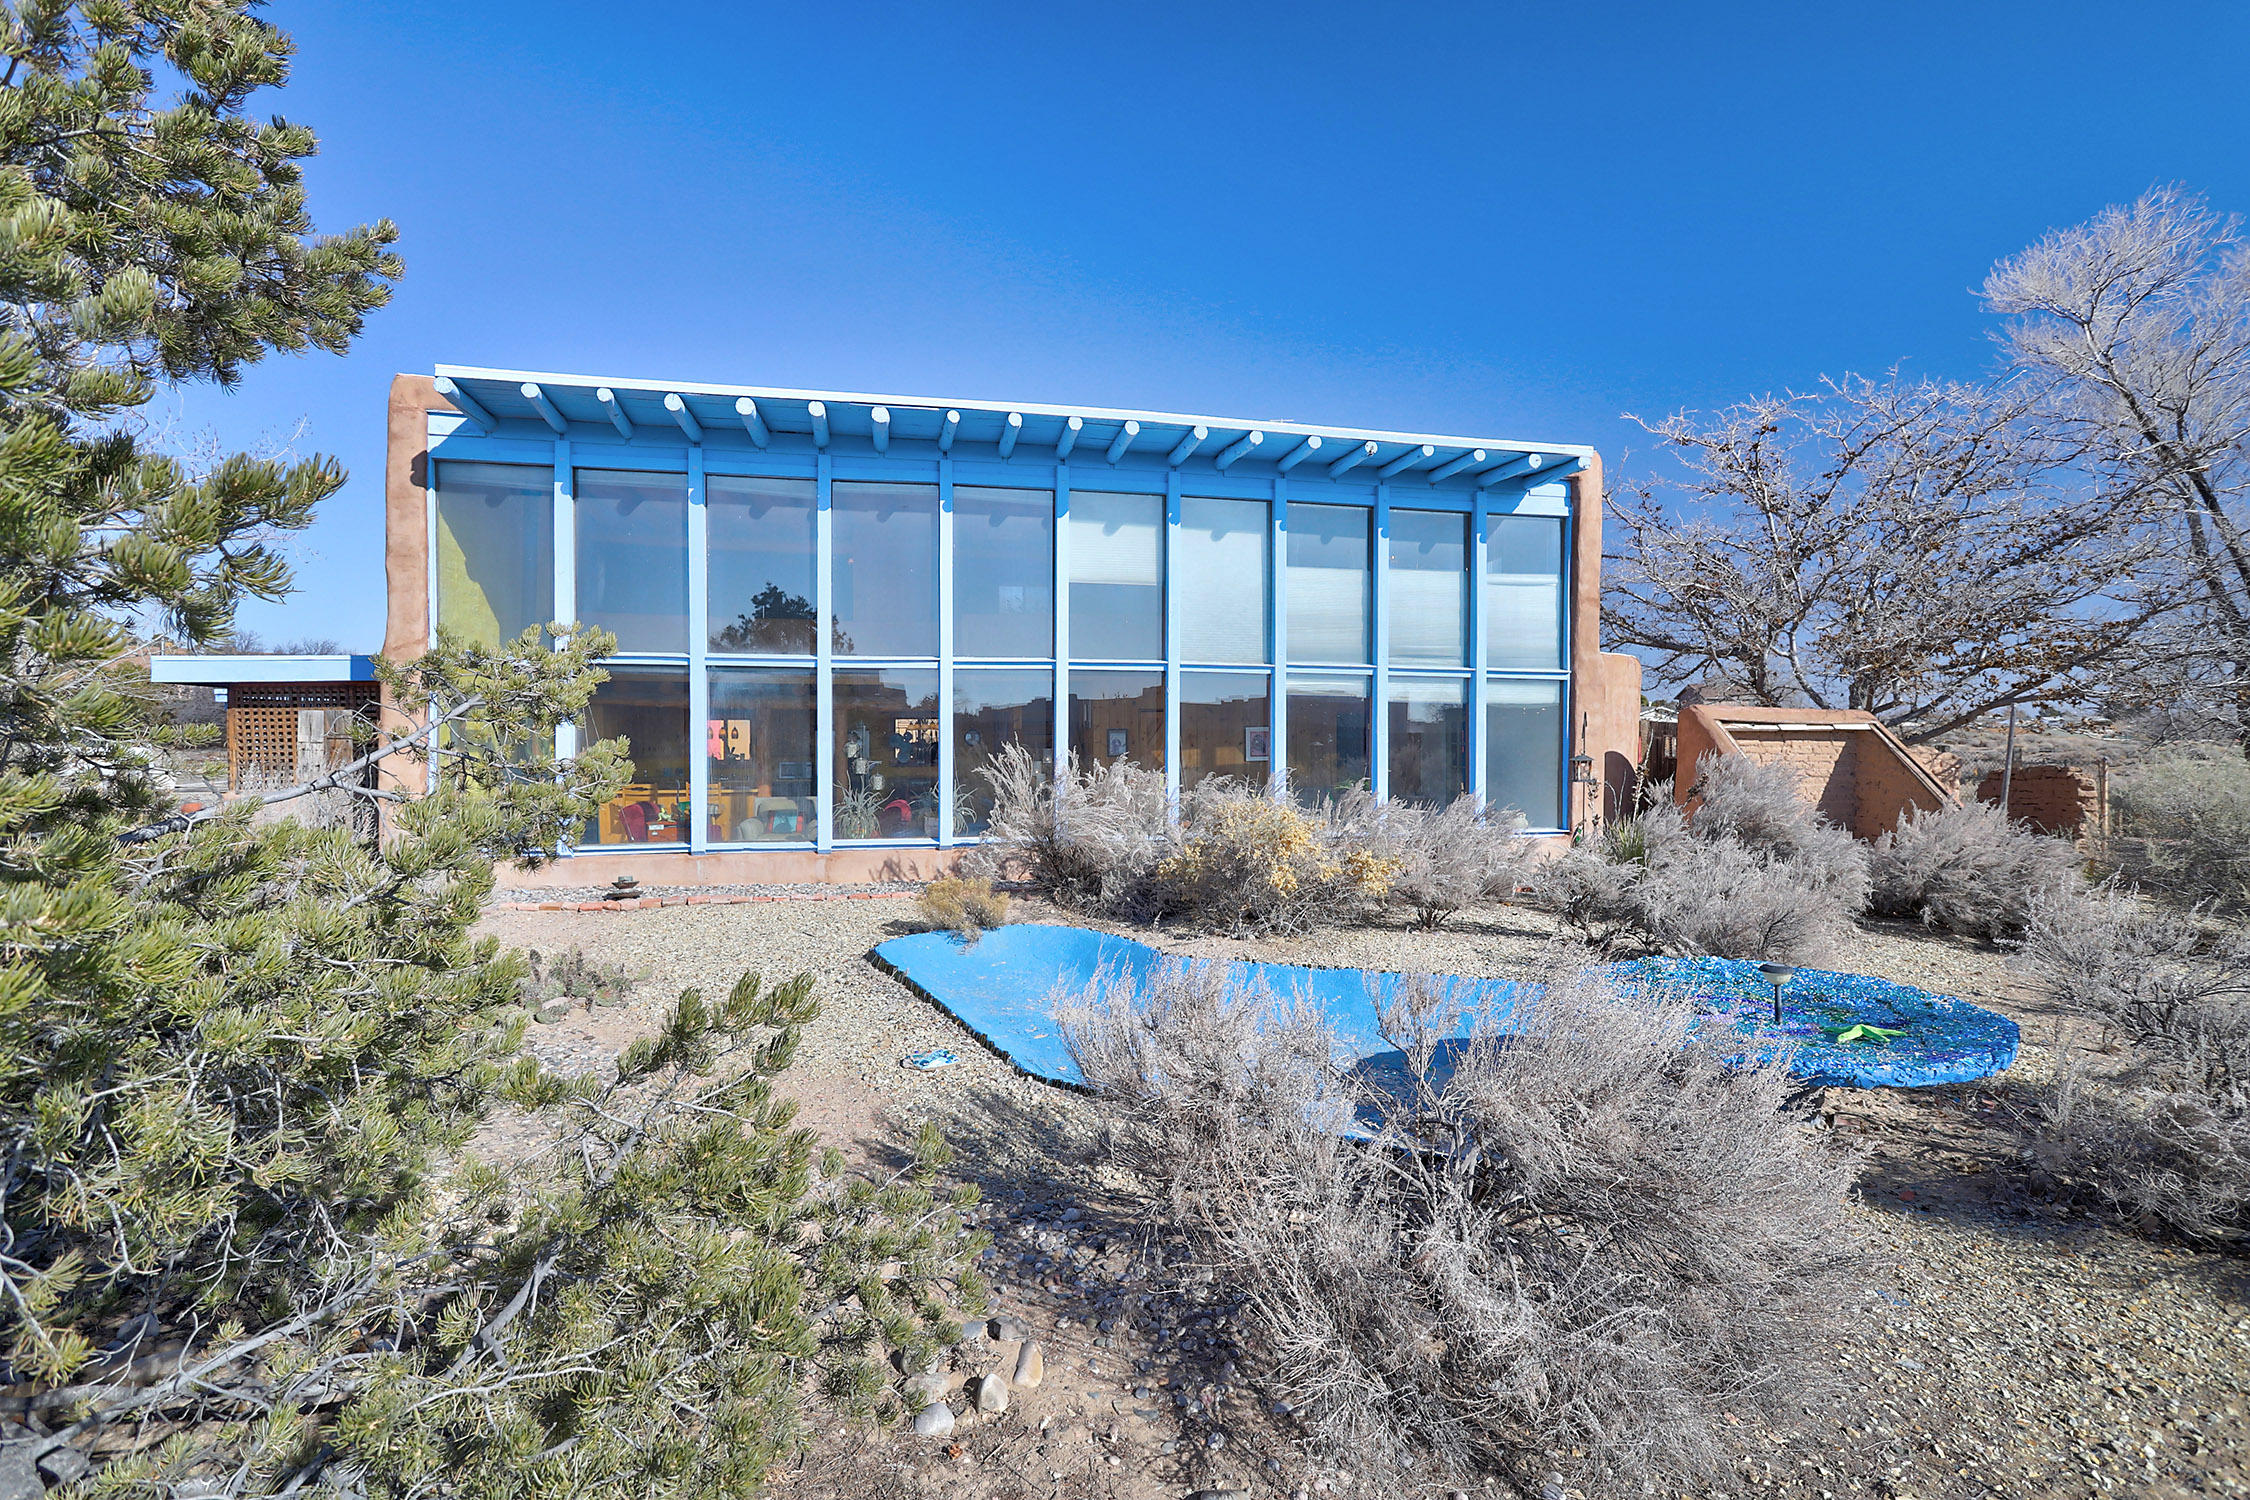 This iconic, authentic New Mexico, passive solar home boasts spectacular views of Sandia mountains & the lights of Albuquerque. Designed by renown solar environmental architect David Wright this structurally impressive adobe construction home is enhanced by the coveted cul-de-sac location showcased by mature trees, colorful plantings & two-tiered fountain on the professionally landscaped lot with front and back covered patios. The grand double paned windows encompass the entire south side of home. Brick floors & window seat bancos conduct solar heat maintaining cozy, sunny environment in winter while summers remain cool and comfortable. Bold viga beams, pine and cedar doors, walls & cupboards, highlight the warm, artistic details throughout! RV parking & expansion option at rear of lot